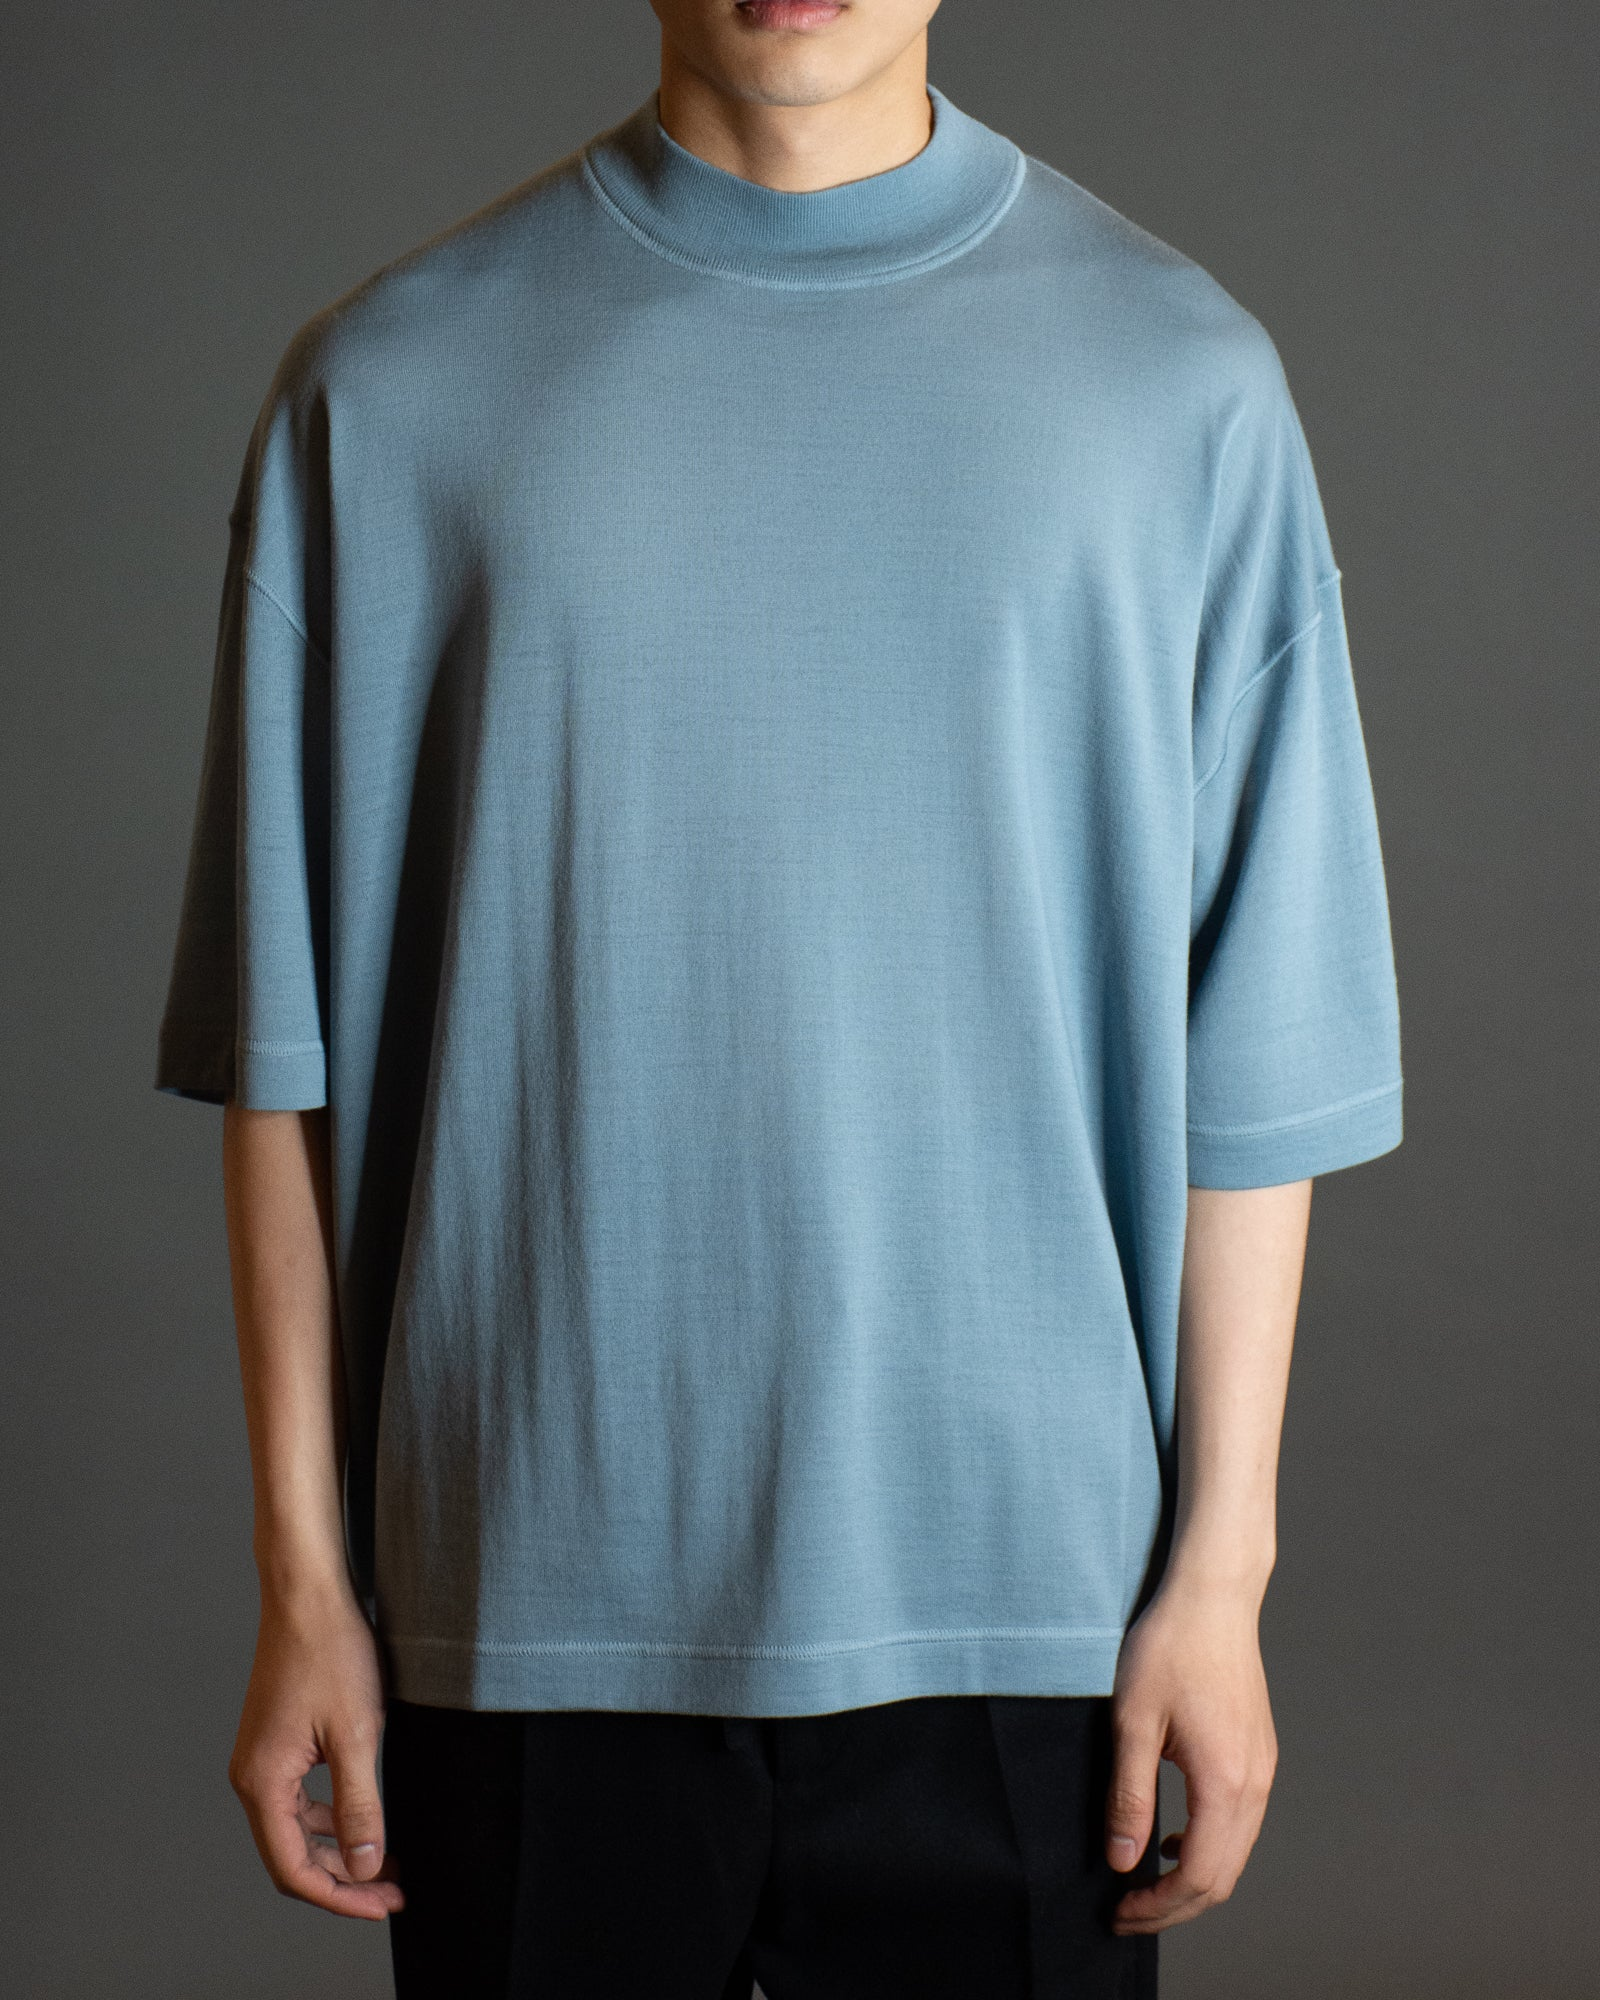 JIL SANDER MOCK NECK KNIT